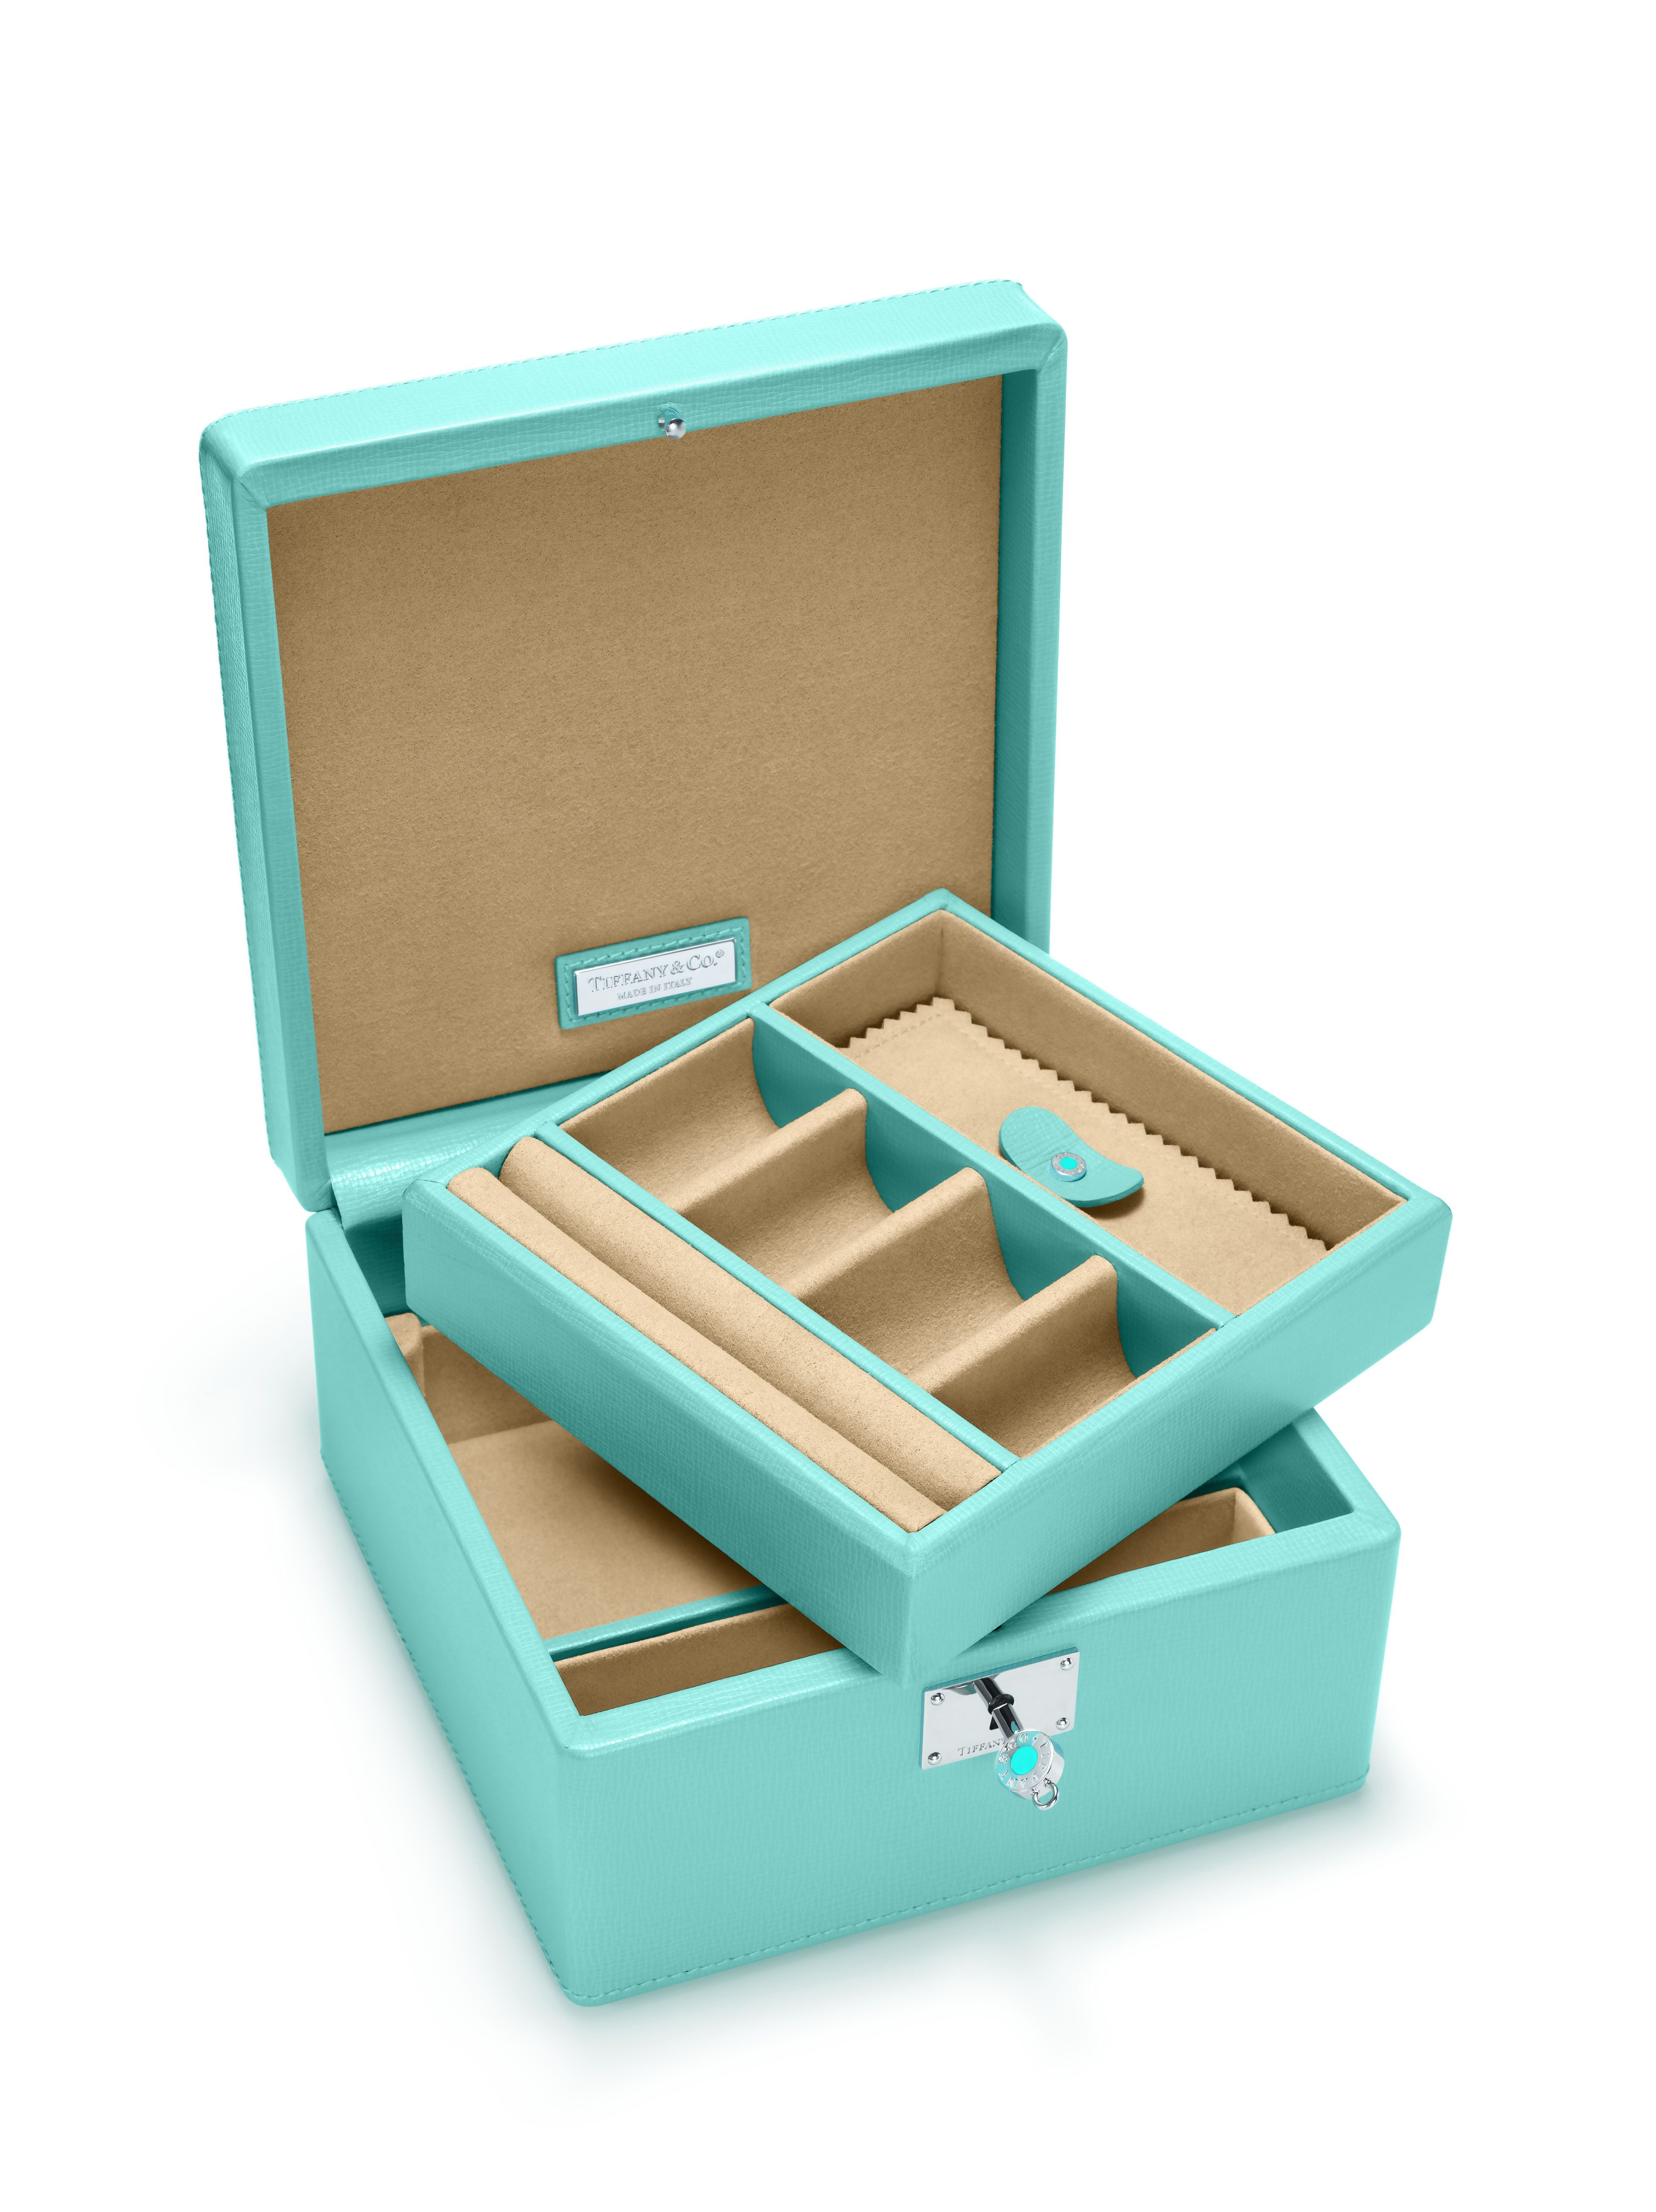 a389a47e36cac Tiffany's Jewelry Box/Organizer ($835!) | T C Clothing and ...